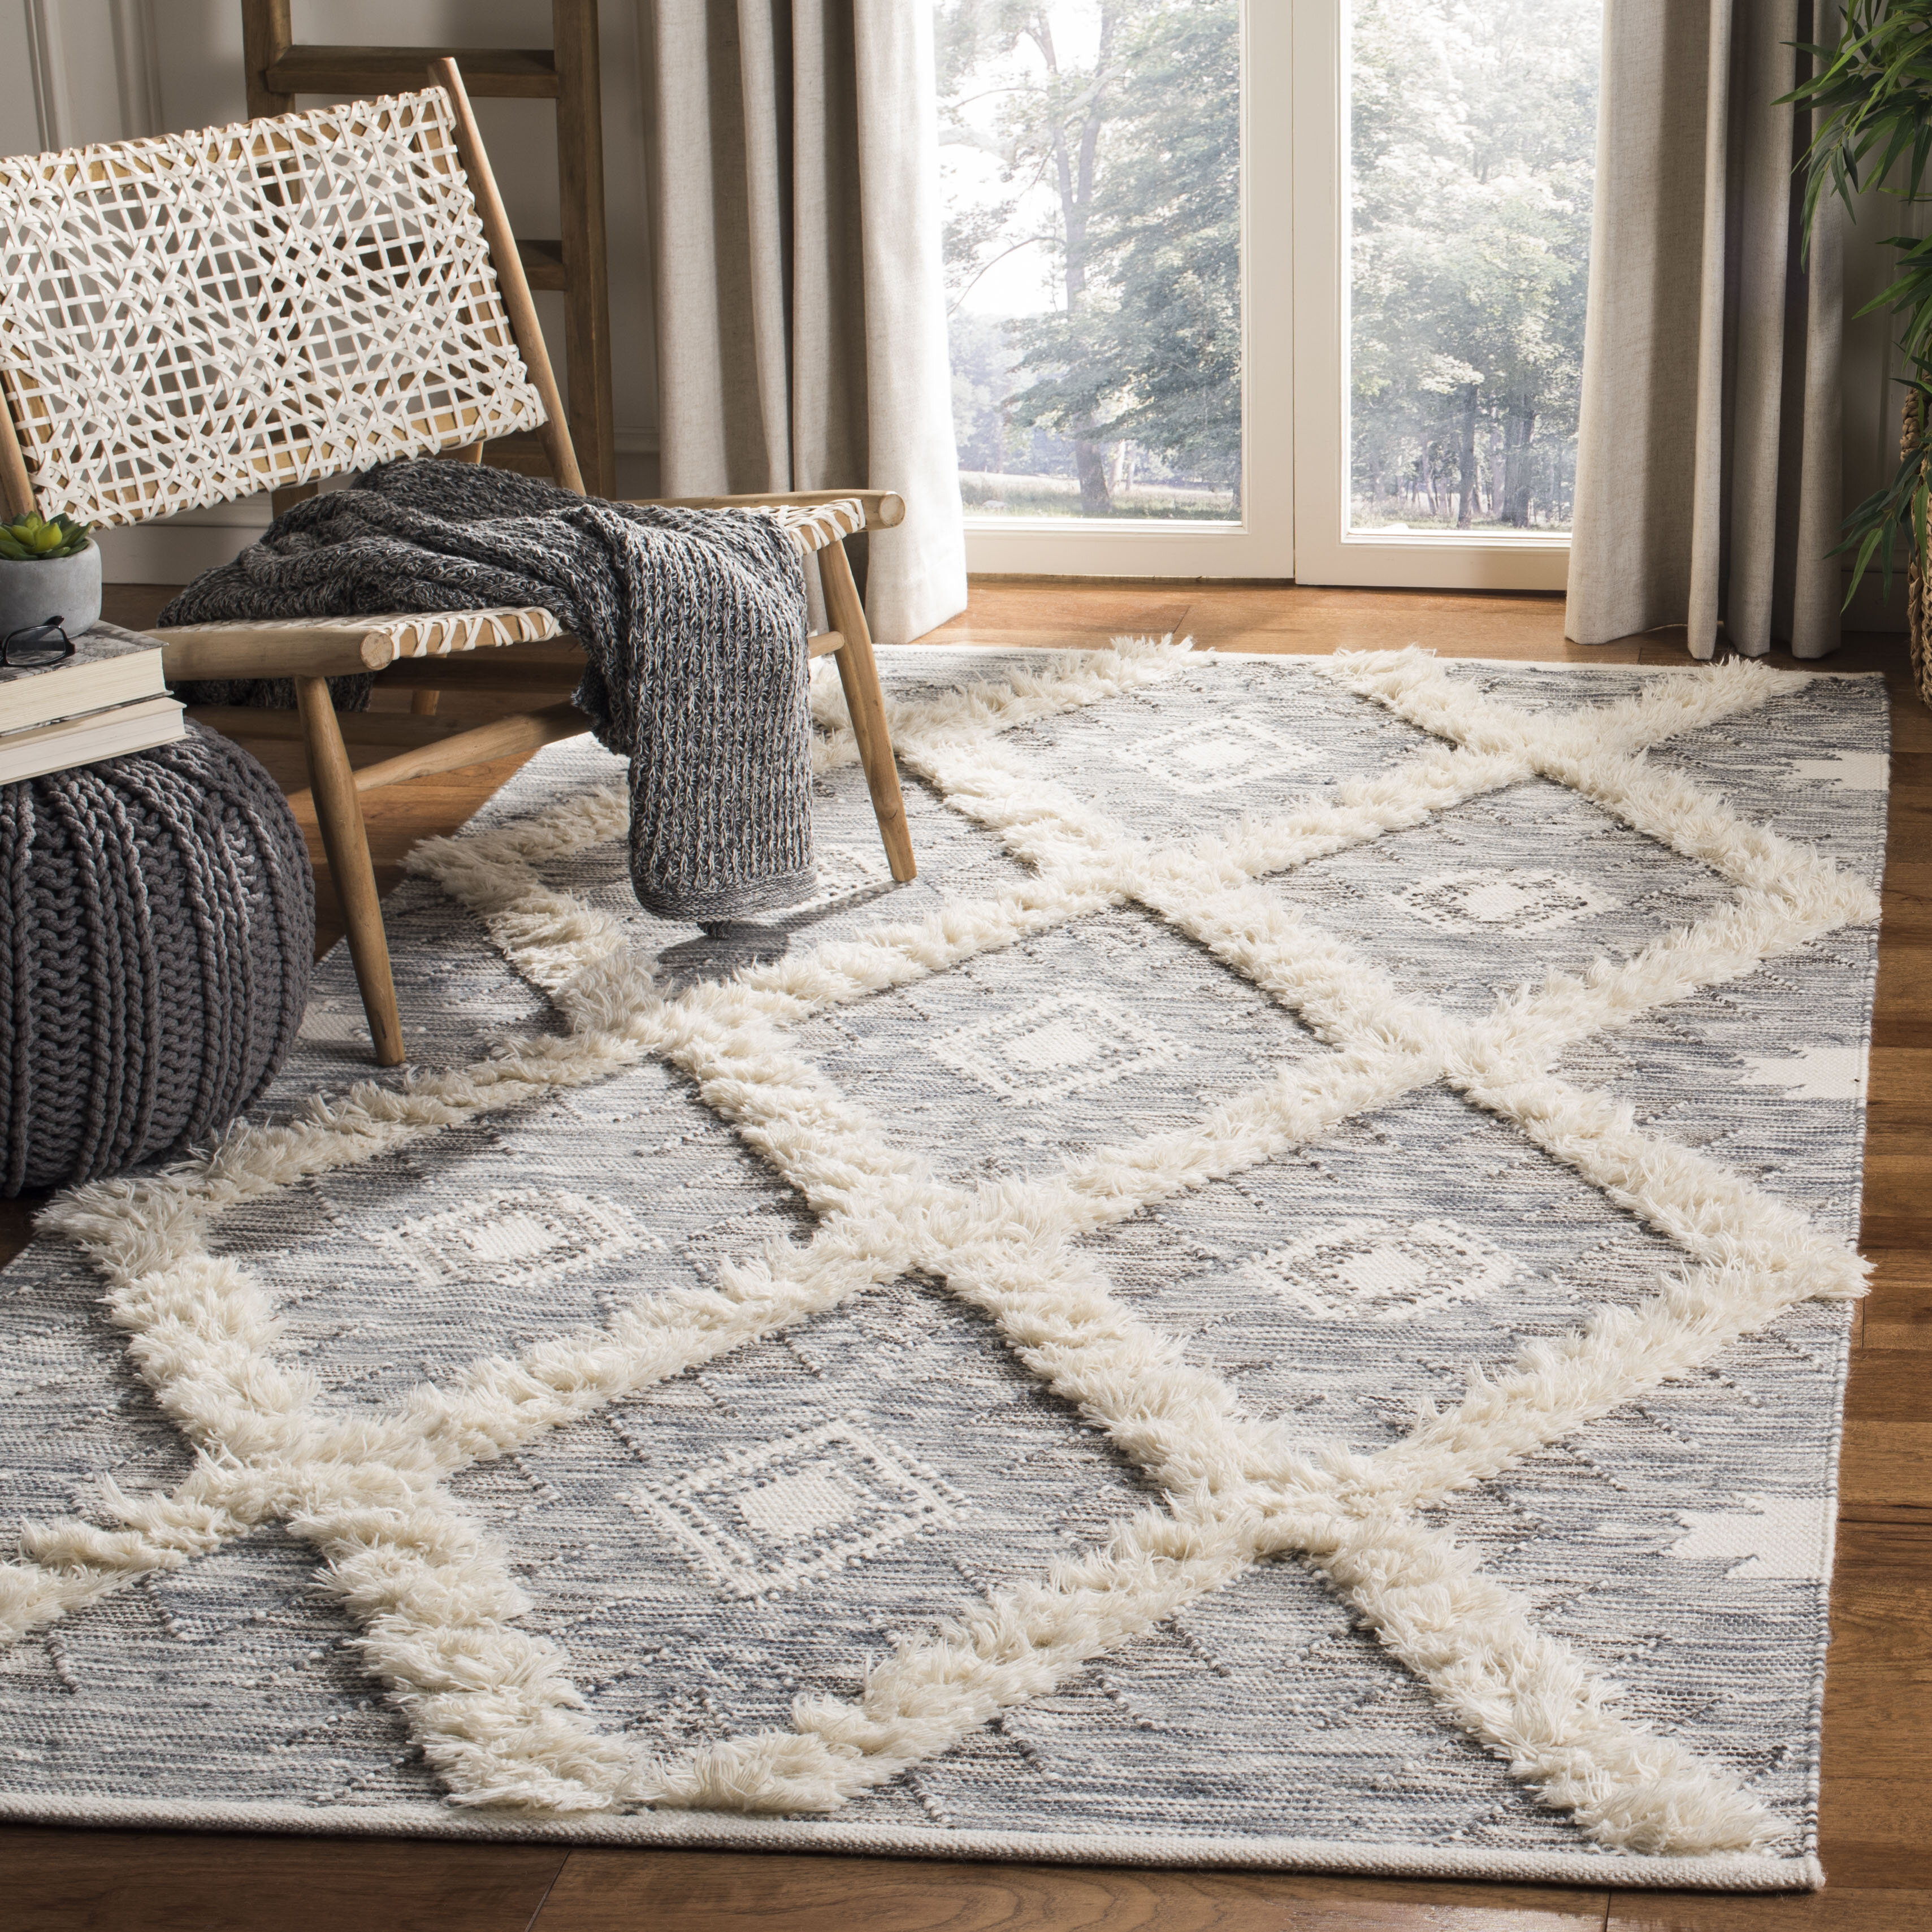 Modern Knotted Wool Area Rugs Allmodern